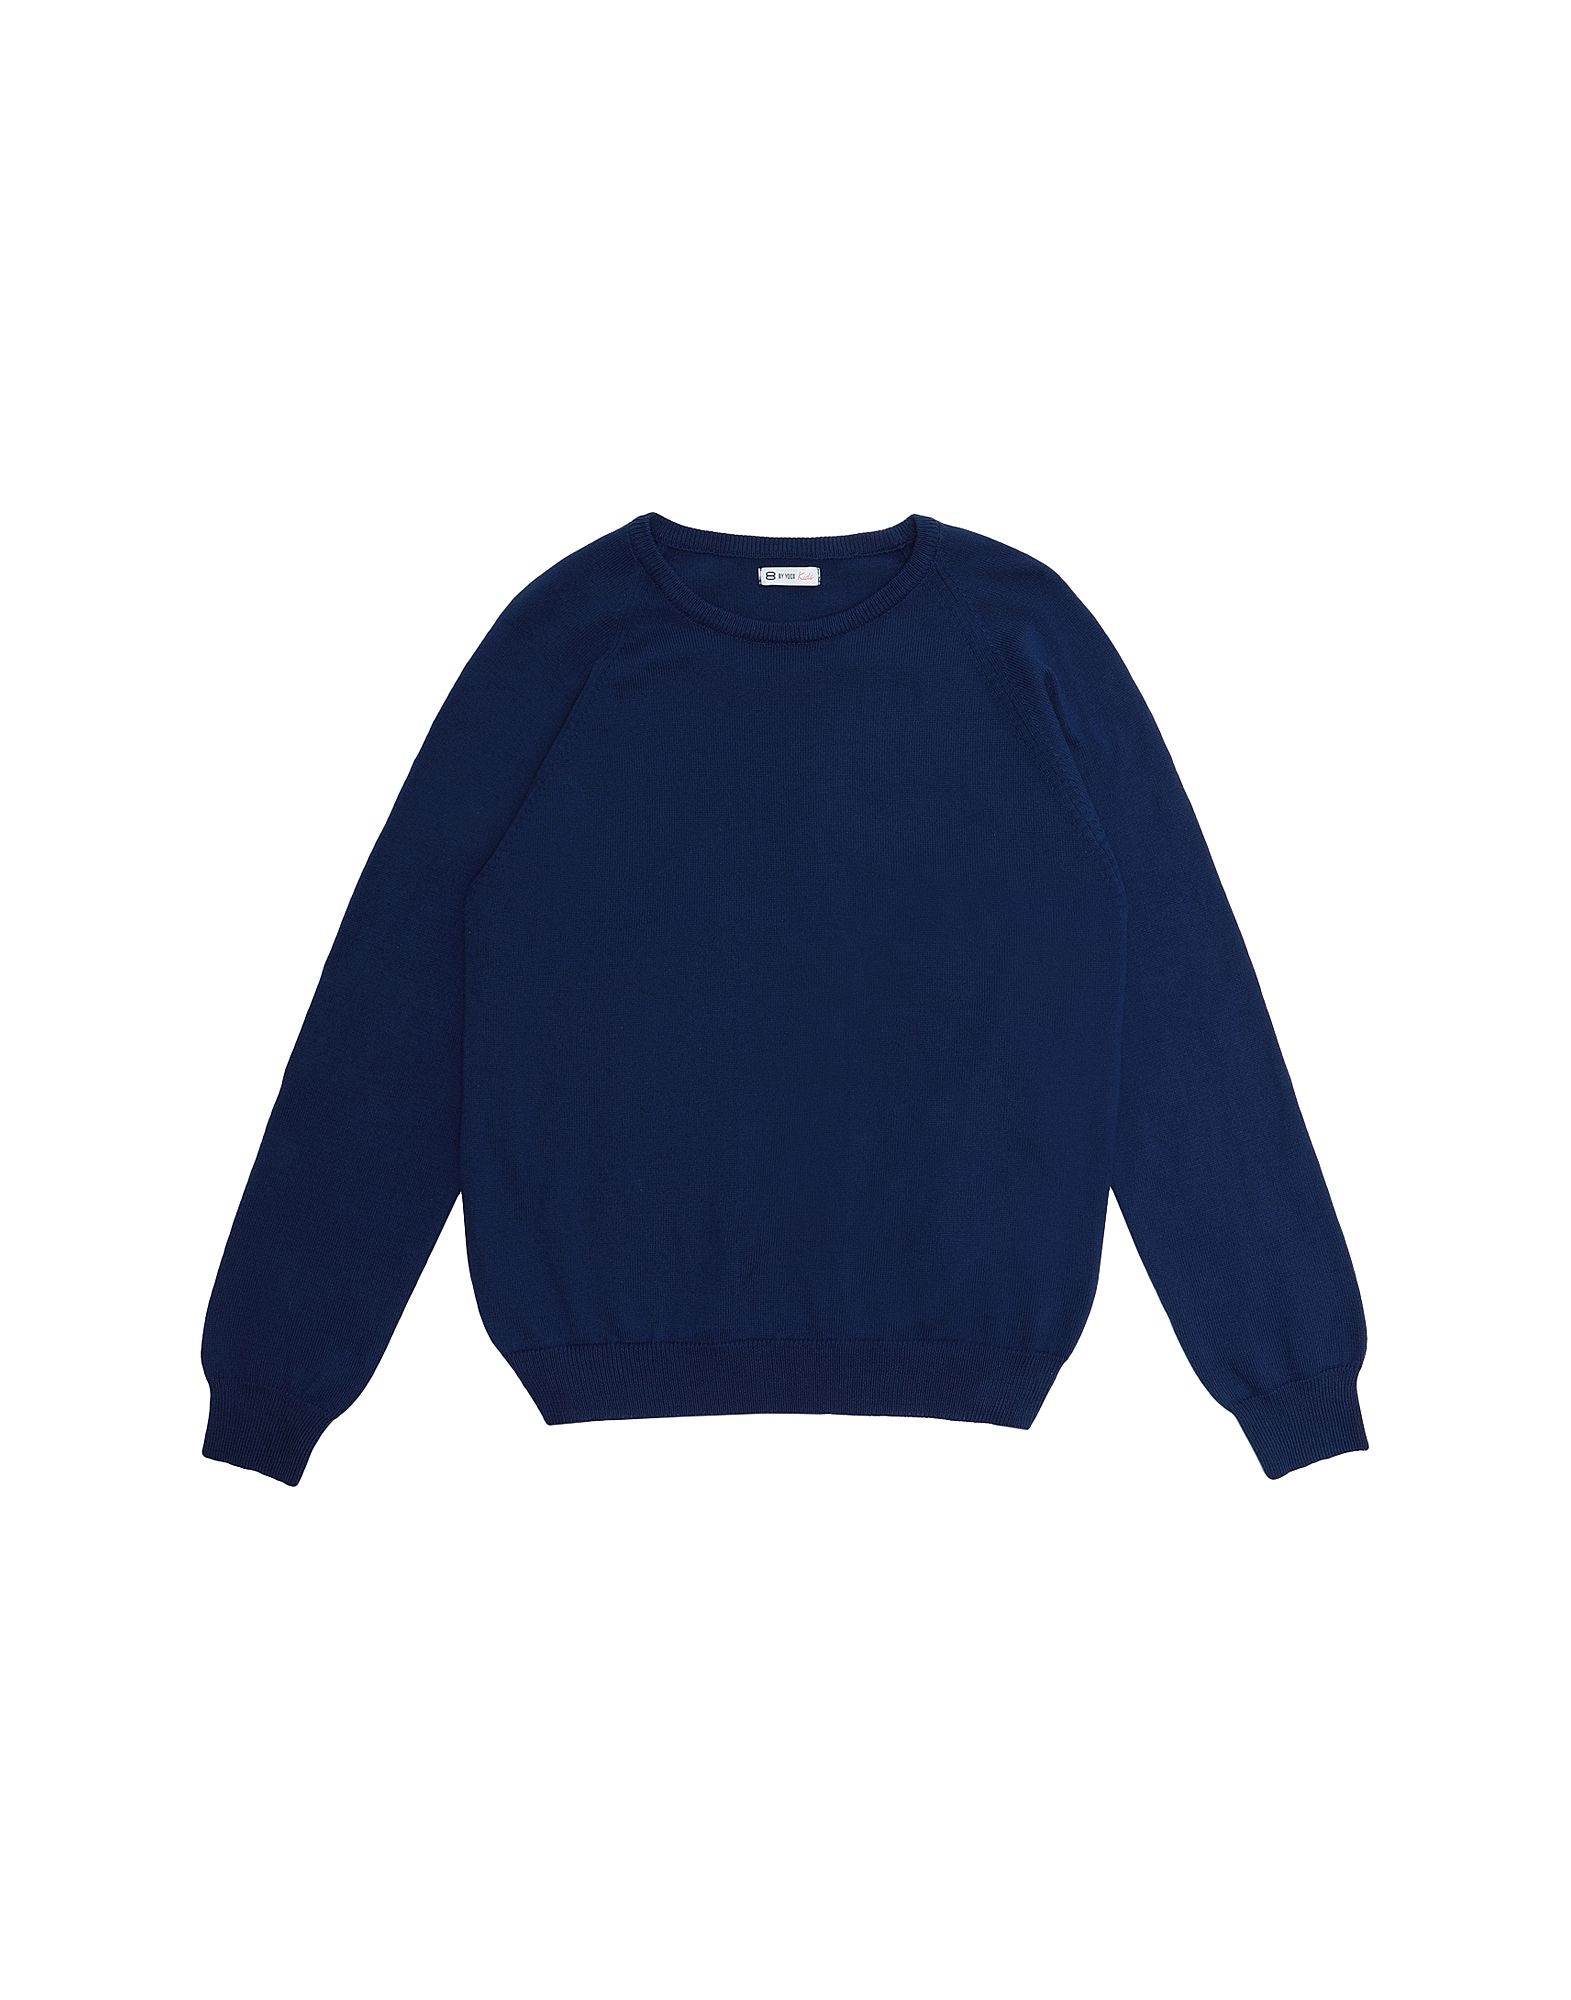 8 by YOOX Pullover Kinder Blau von 8 by YOOX